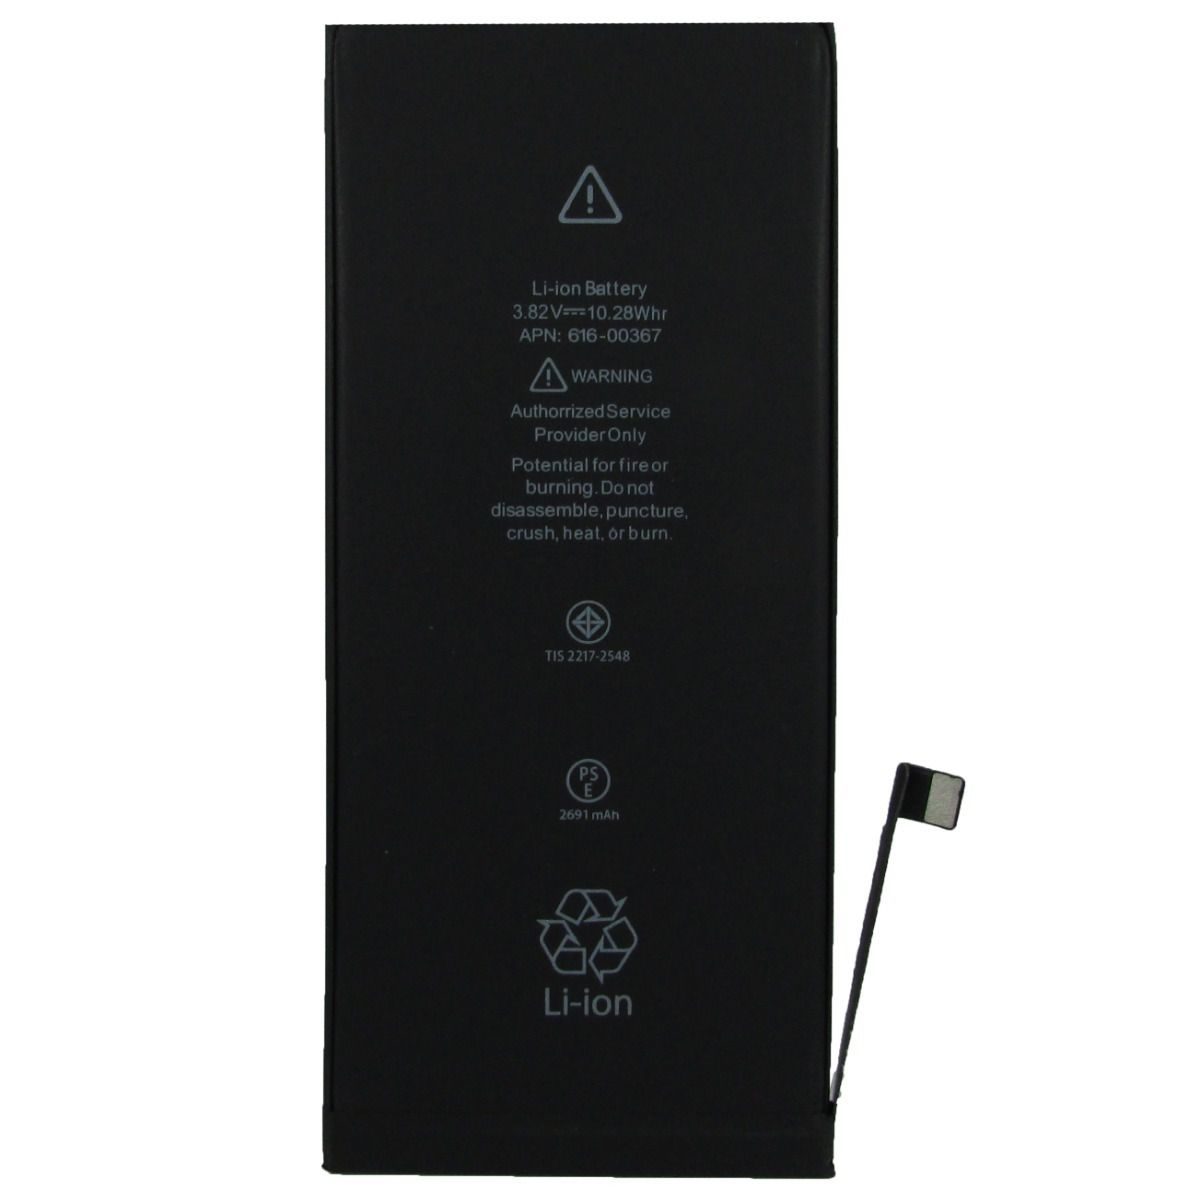 Bateria Apple iPhone 7 Plus 2675mAh Original